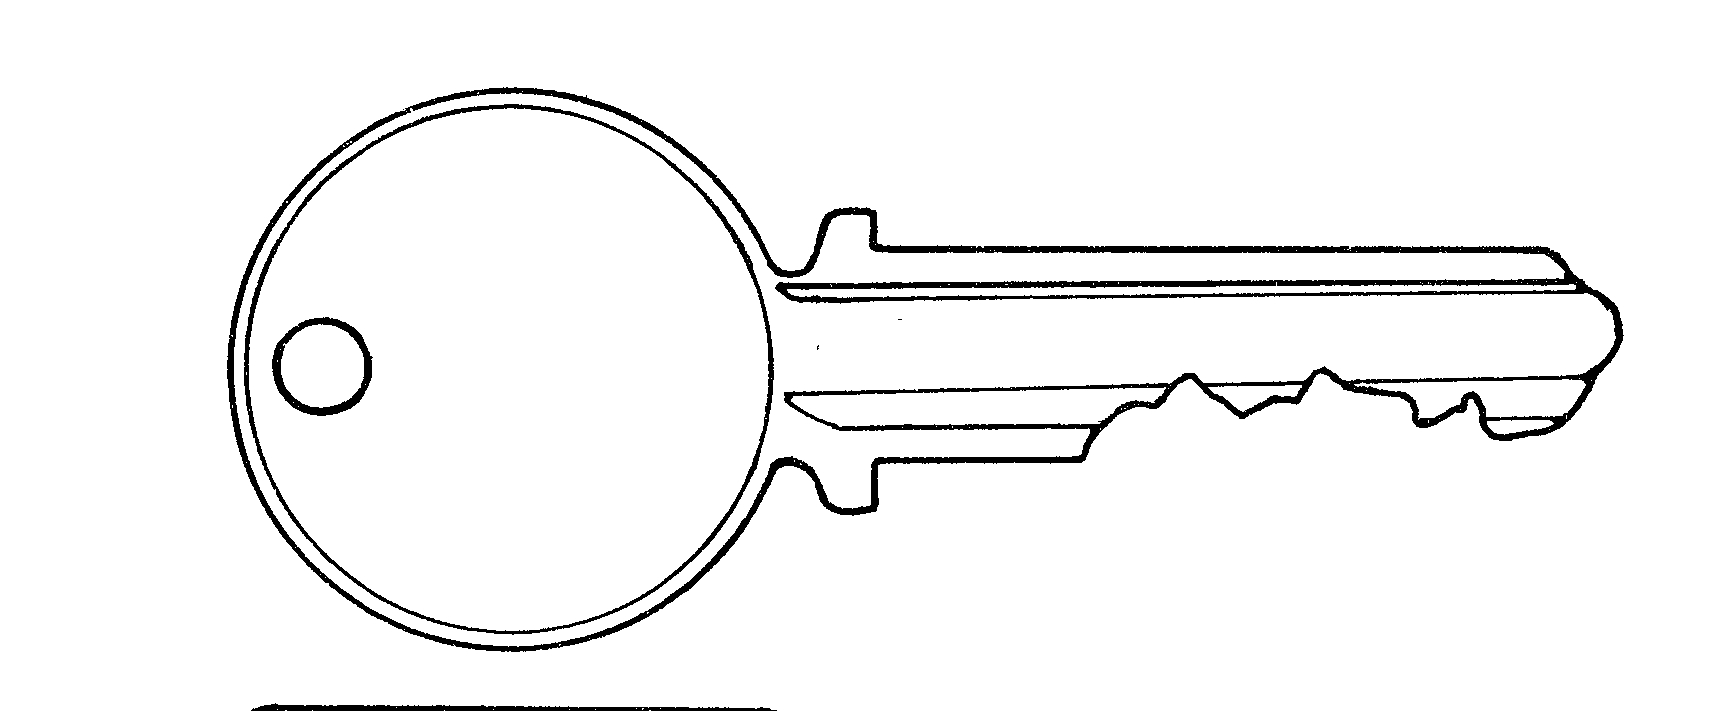 Free Key Black And White Clipart, Download Free Clip Art.